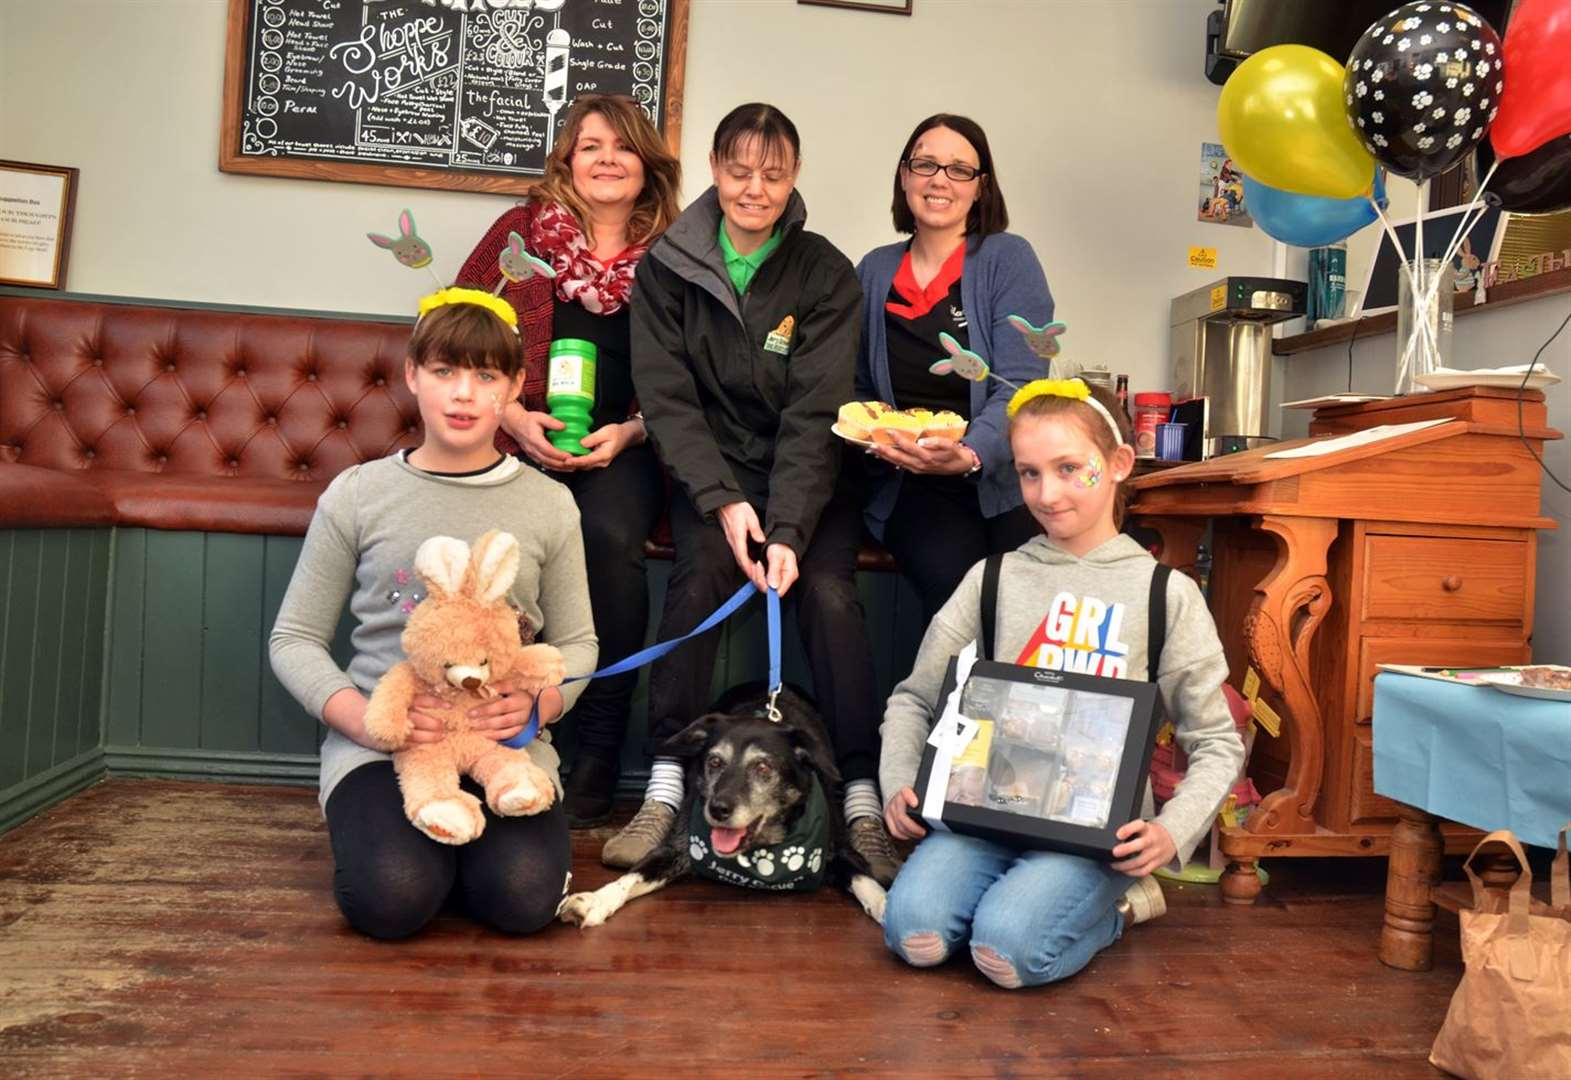 Holbeach barber shop is 'doing it for the dogs' with fundraiser